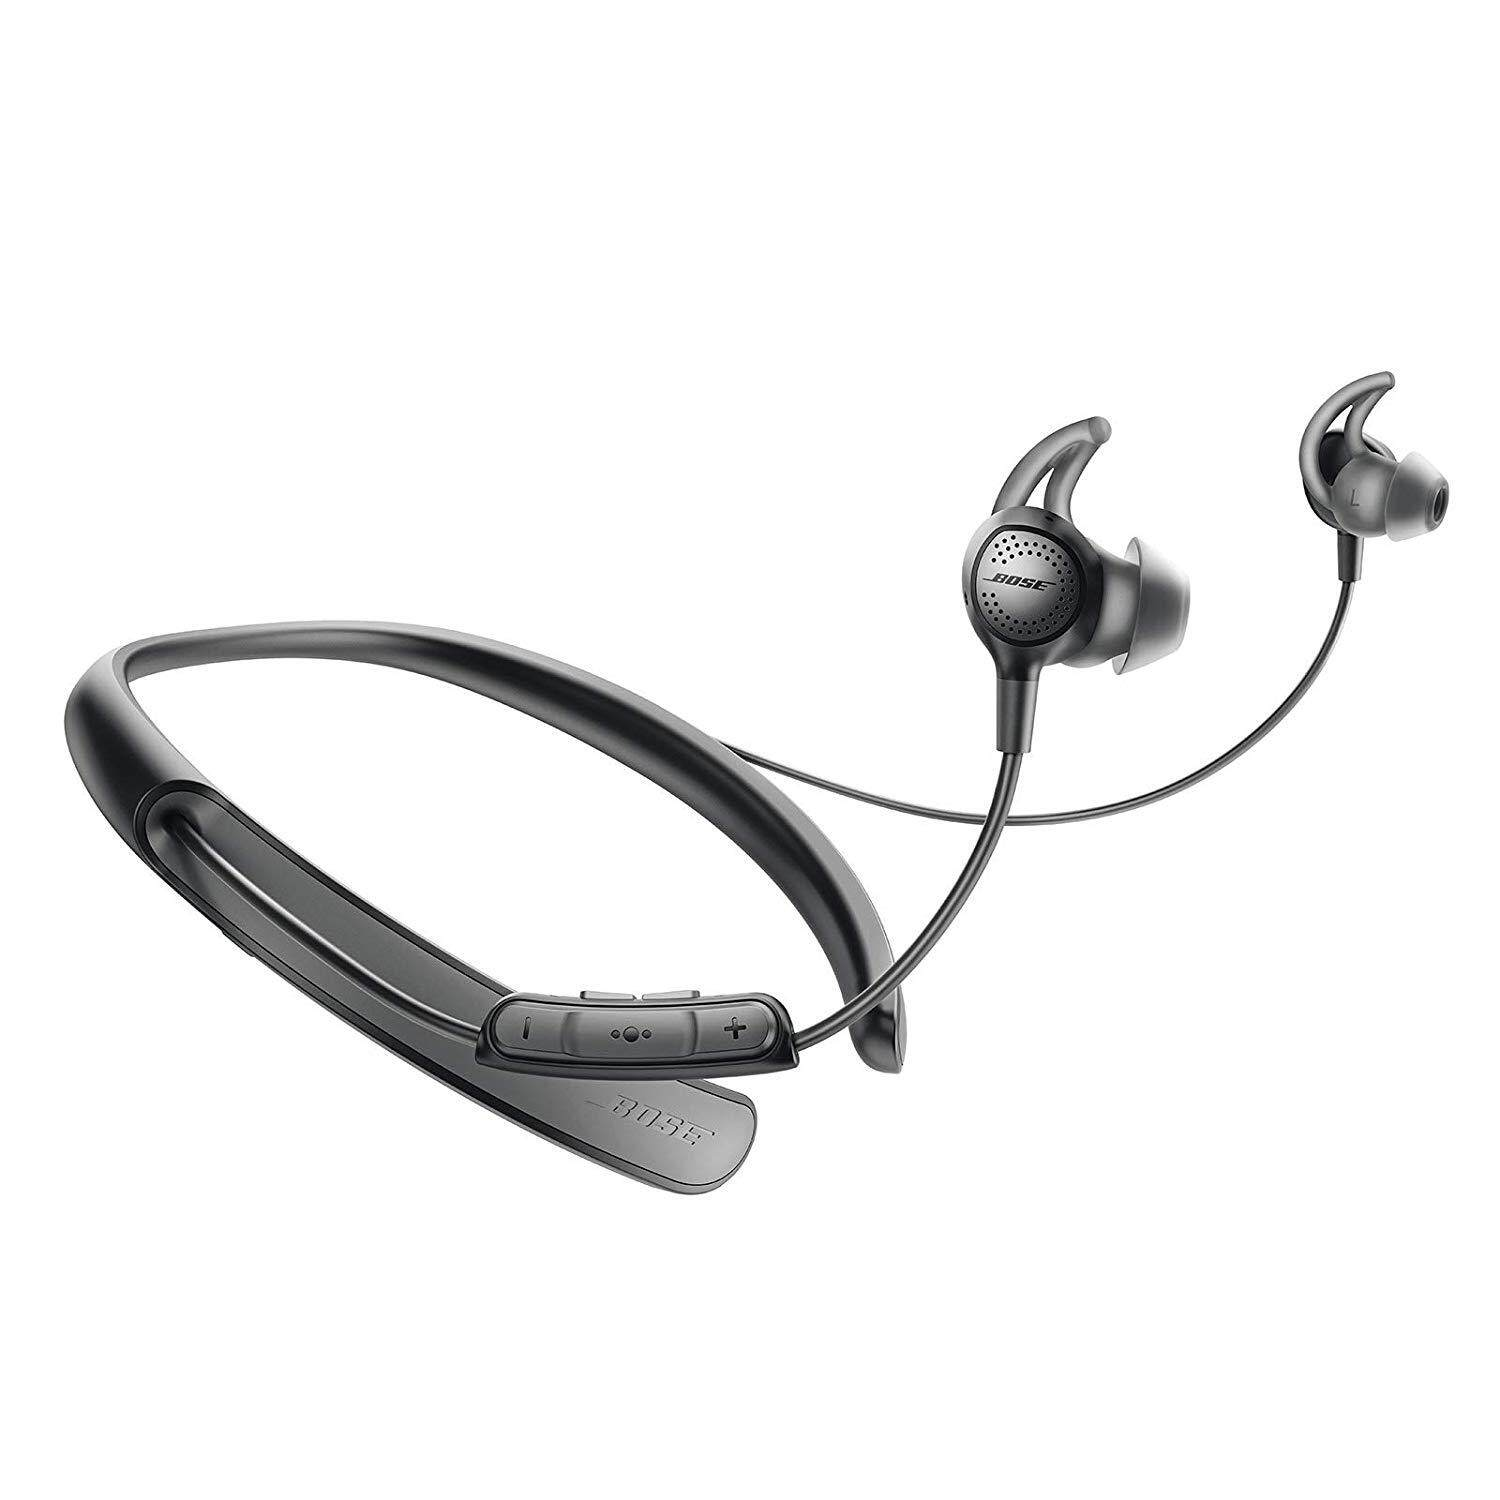 ยี่ห้อนี้ดีไหม  พะเยา Bose Quietcontrol 30 Wireless Headphones  Noise Cancelling - Black QC30